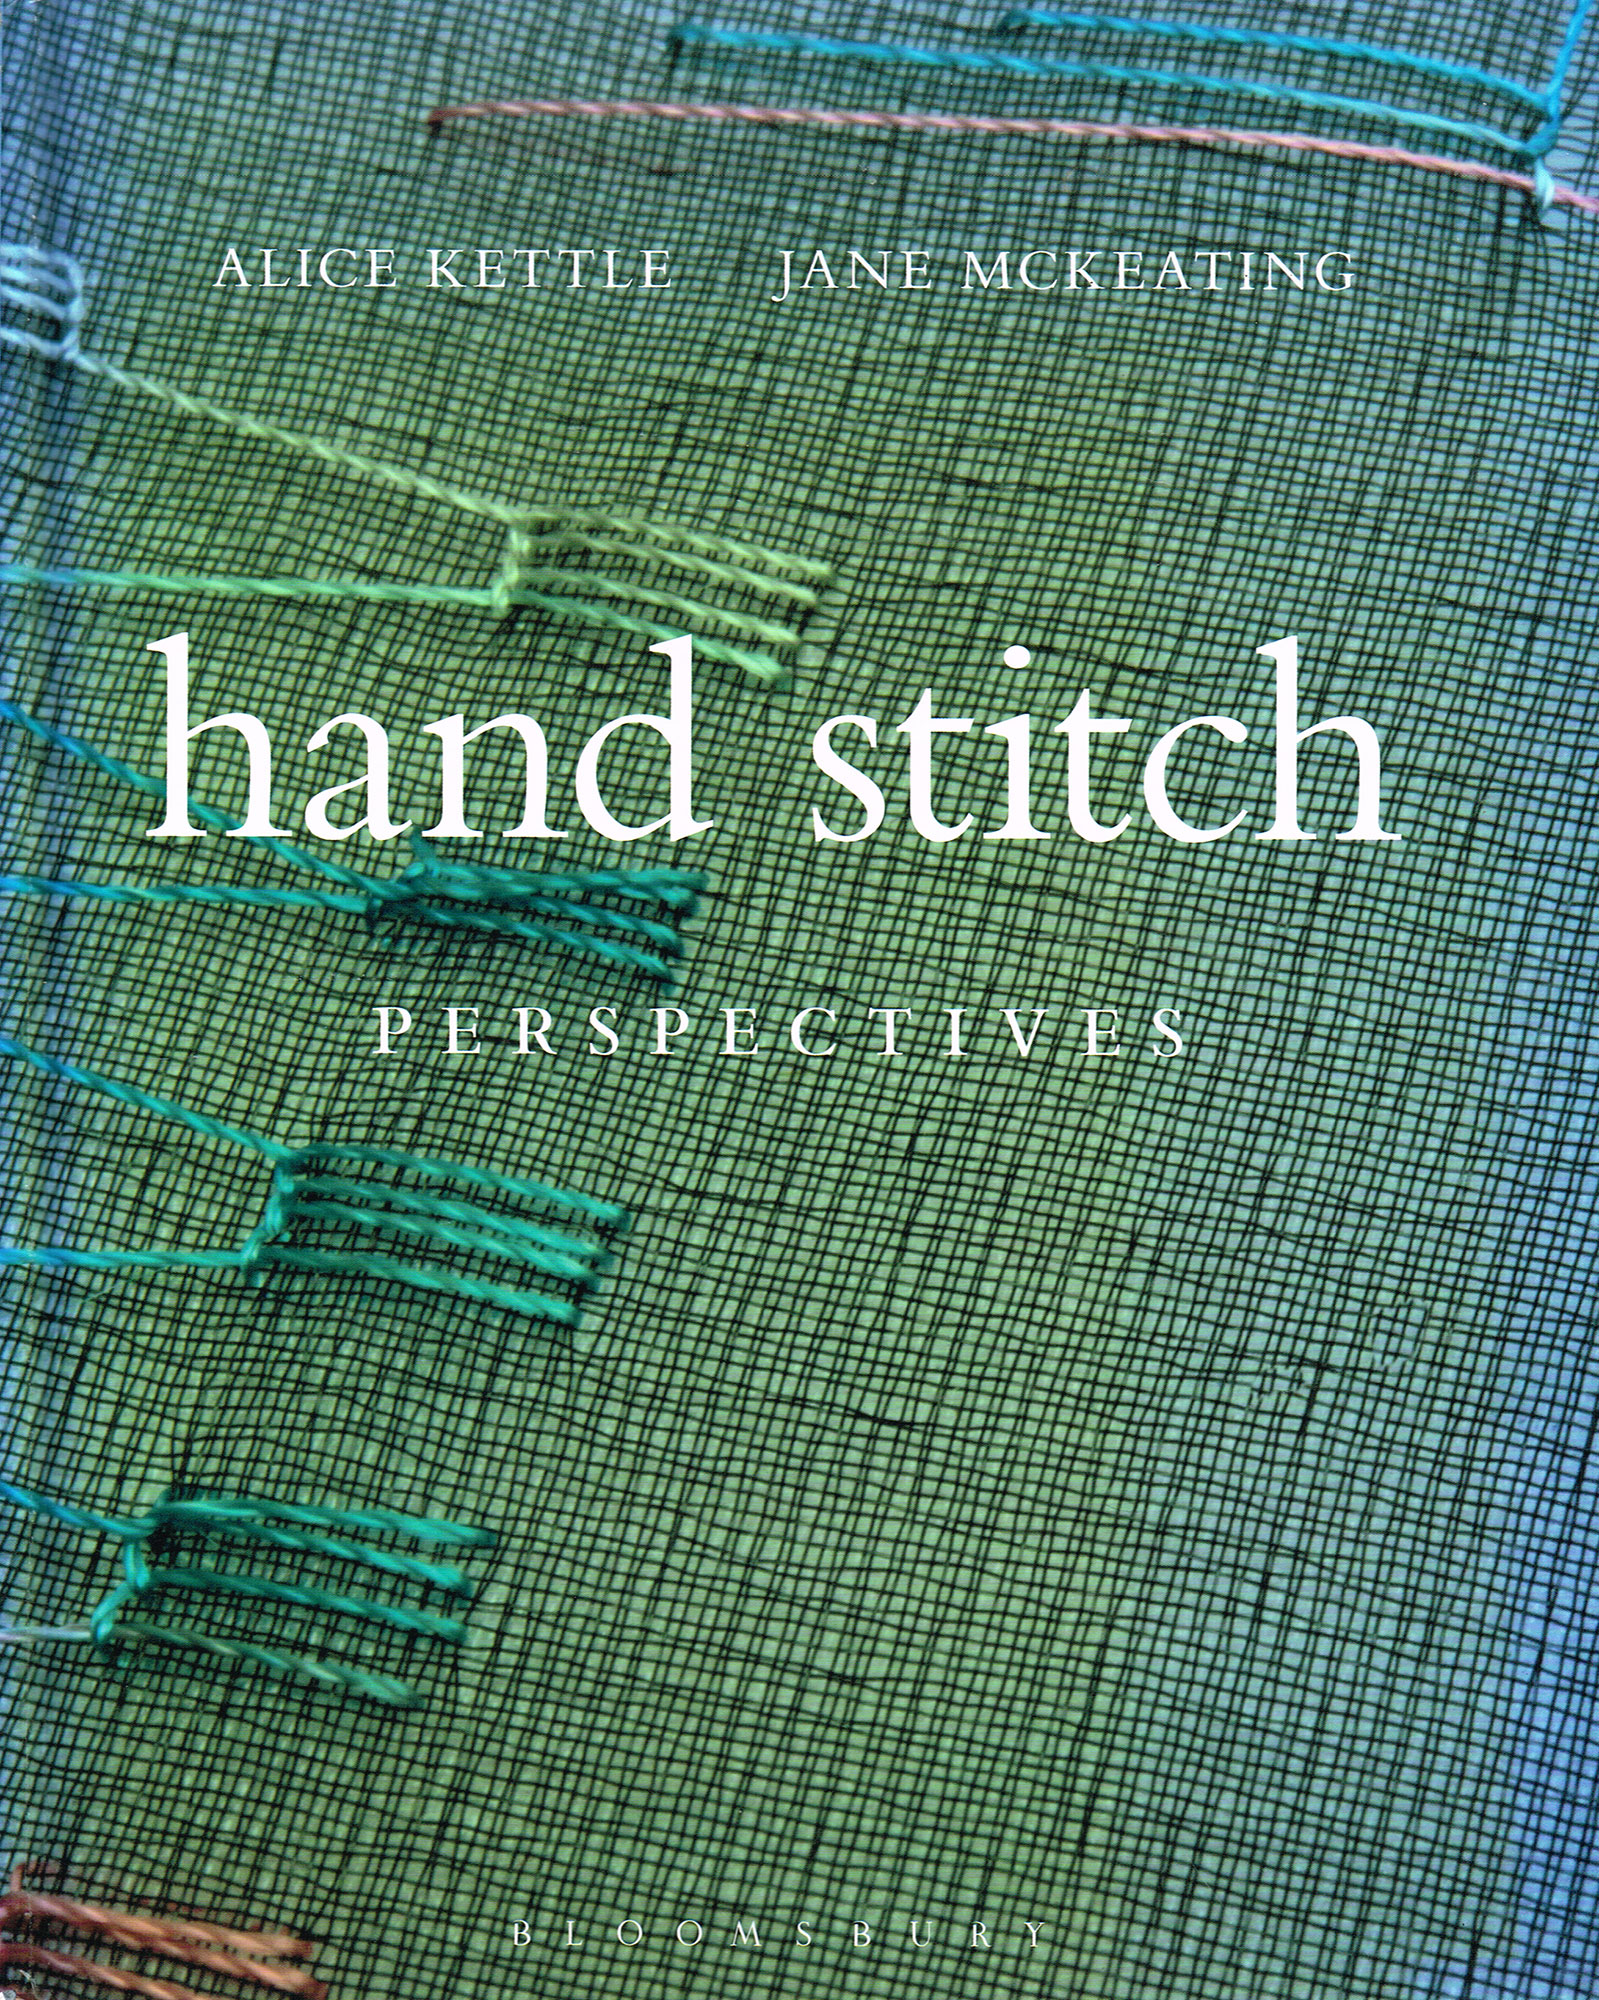 Jane McKeating, Hand stitch perspectives